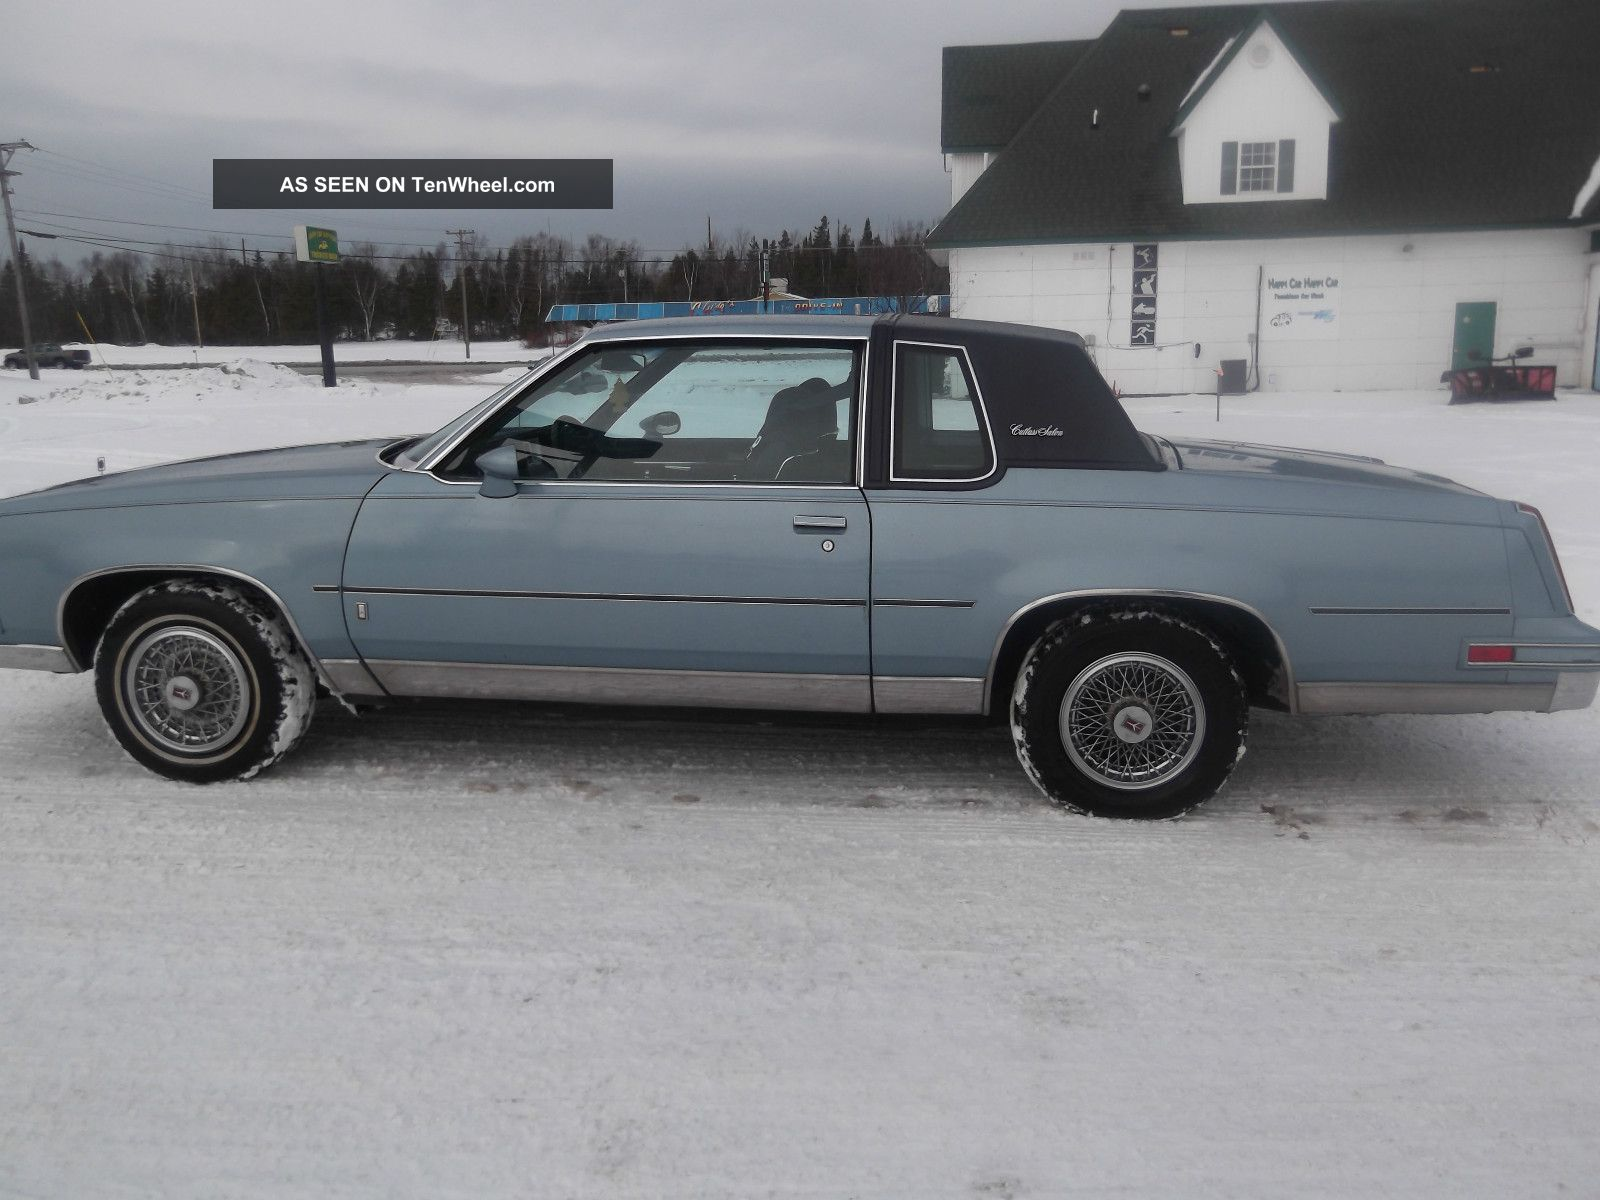 1985 oldsmobile cutlass salon base coupe 2 door 5 0l for 1985 oldsmobile cutlass salon